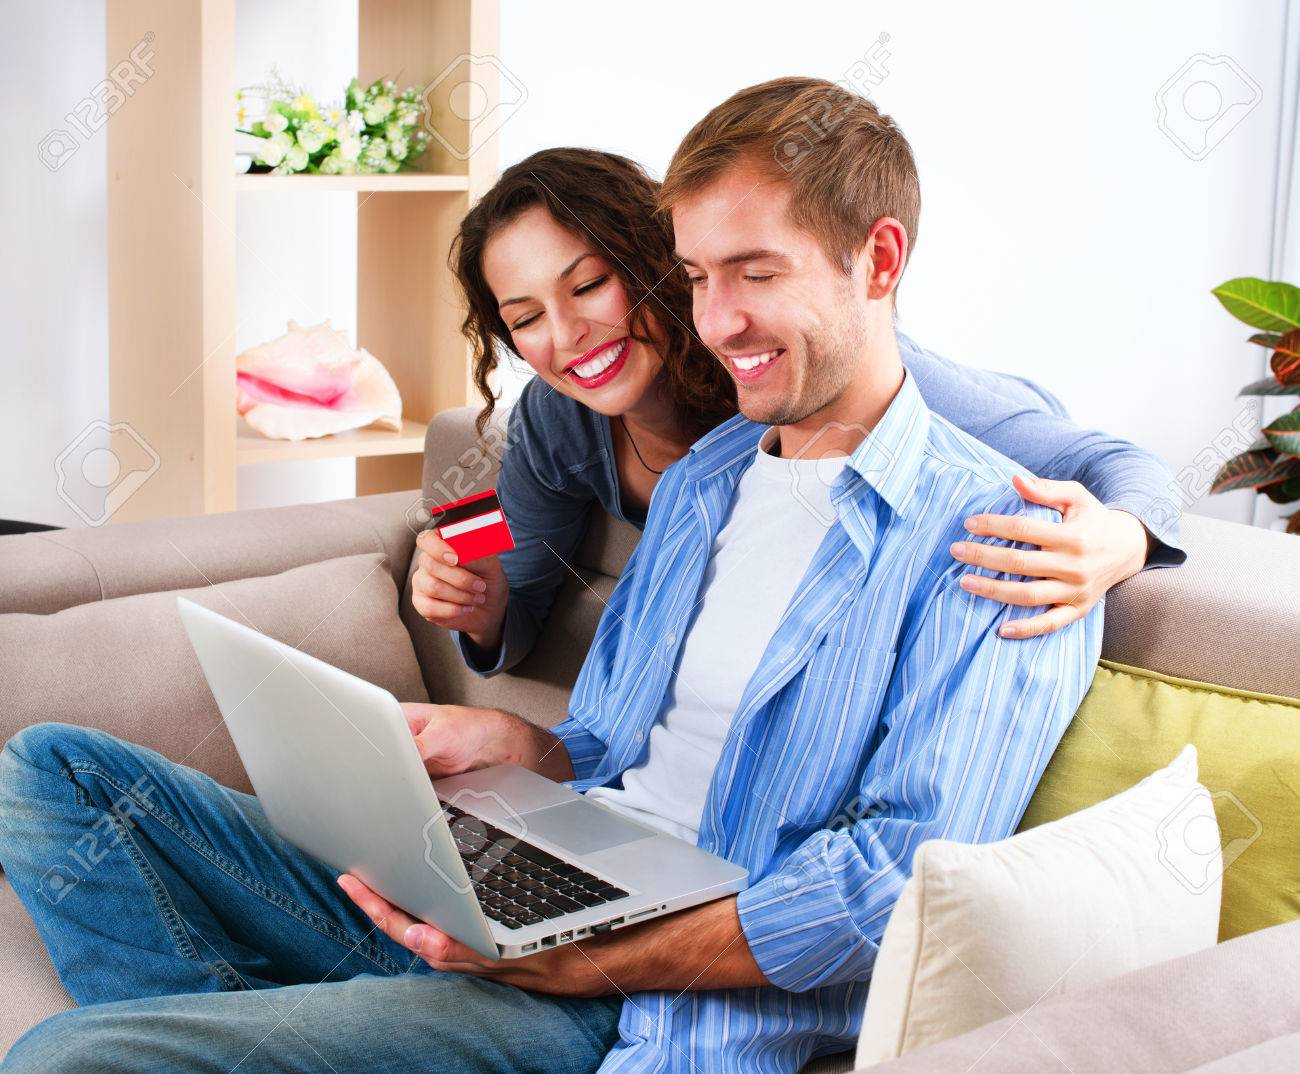 Online Shopping  Happy Couple Using Credit Card to Internet Shop Stock Photo - 24331802